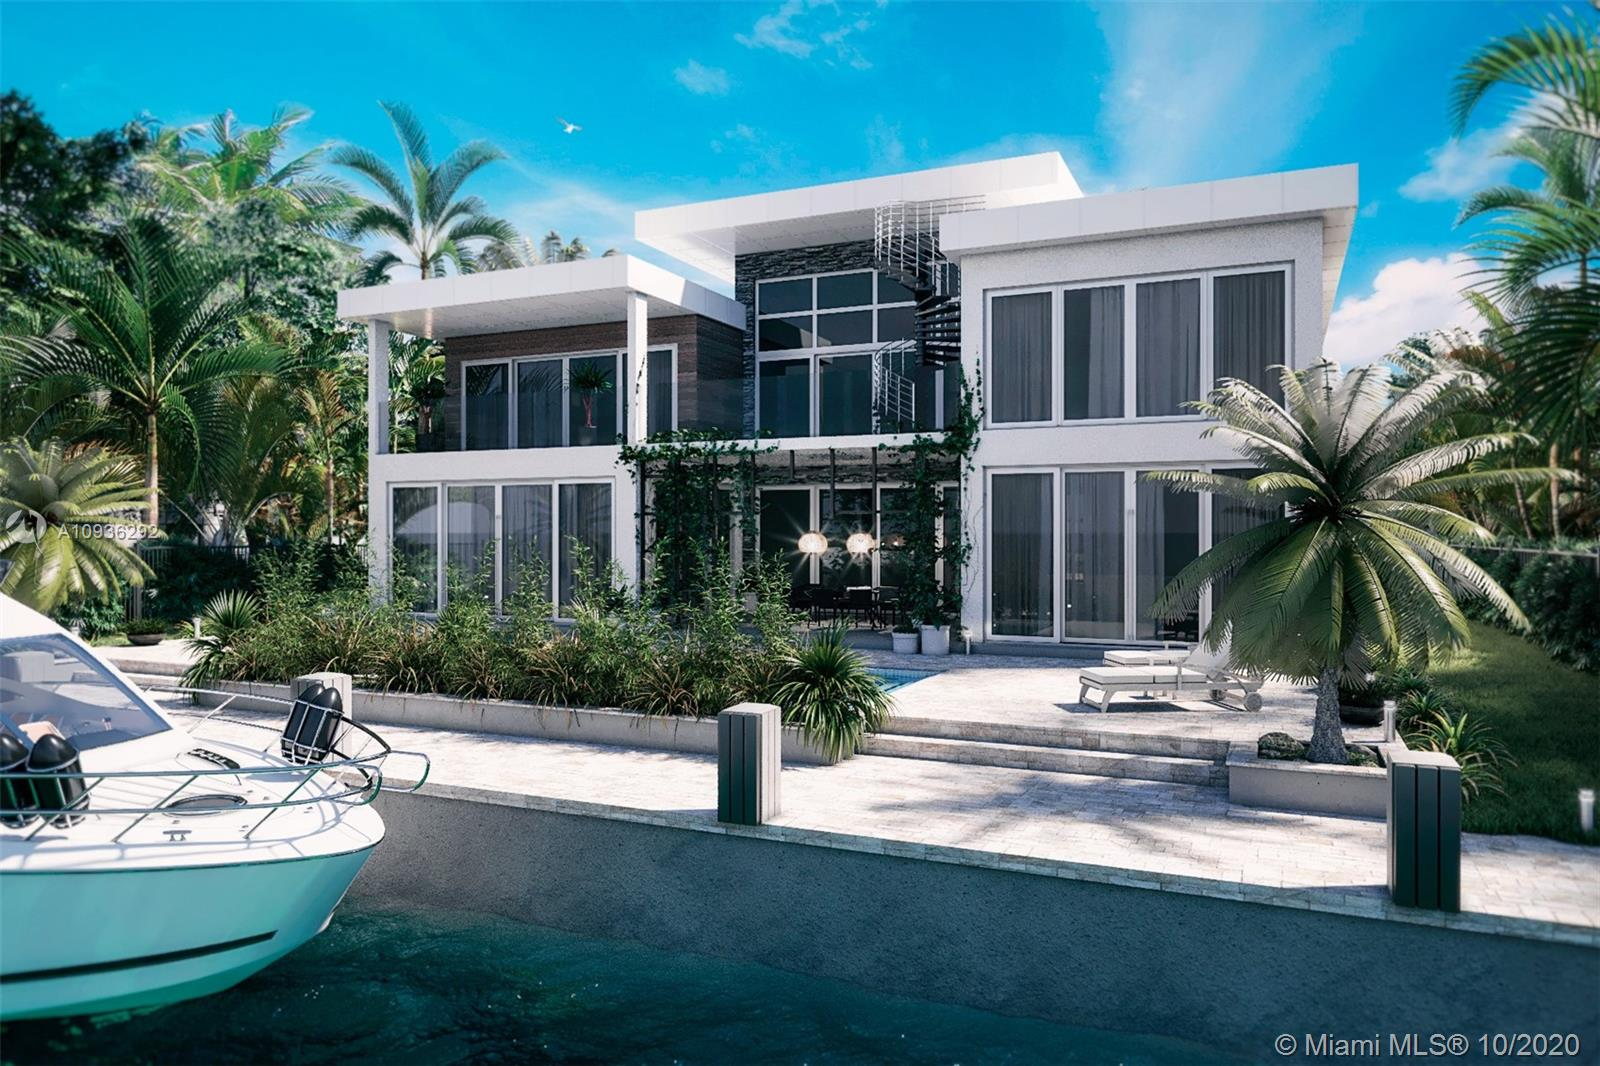 """NEW CONSTRUCTION!!Ft Lauderdale's most prestigious waterfront neighborhoods of Nurmi Isles. CONTEMPORARY 6 BED+LOFT+THEATER/BONUS RM,6.5 BATHS,3 CG, INFINITY POOL & 85 FT DOCKAGE. LINEAR FIRE PLACE,MARBLE IN living areas,ESPRESSO WOOD FLOORS IN ALL BEDS.STATE OF THE ART GOURMET CHEF'S Kitchen, SS, 48"""" BUILT IN REF,6 BURNER GAS COOK TOP,DBL OVENS, VEN TED EXHAUST HOOD,POT FILLER & QUARTZ COUNTER TOPS. MASTER BED WITH WALK IN CLOSET,SITTING RM &COVERED BALCONY OVERLOOKING POOL& WATER. MASTER BATH SPA SUITE WITH MARBLE FLOORS, SEPARATE HIS & HER VANITIES, JACUZZI, RAINHEAD SHOWER & BODY SPRAYS. Walk to shops & beach, quick ocean access."""